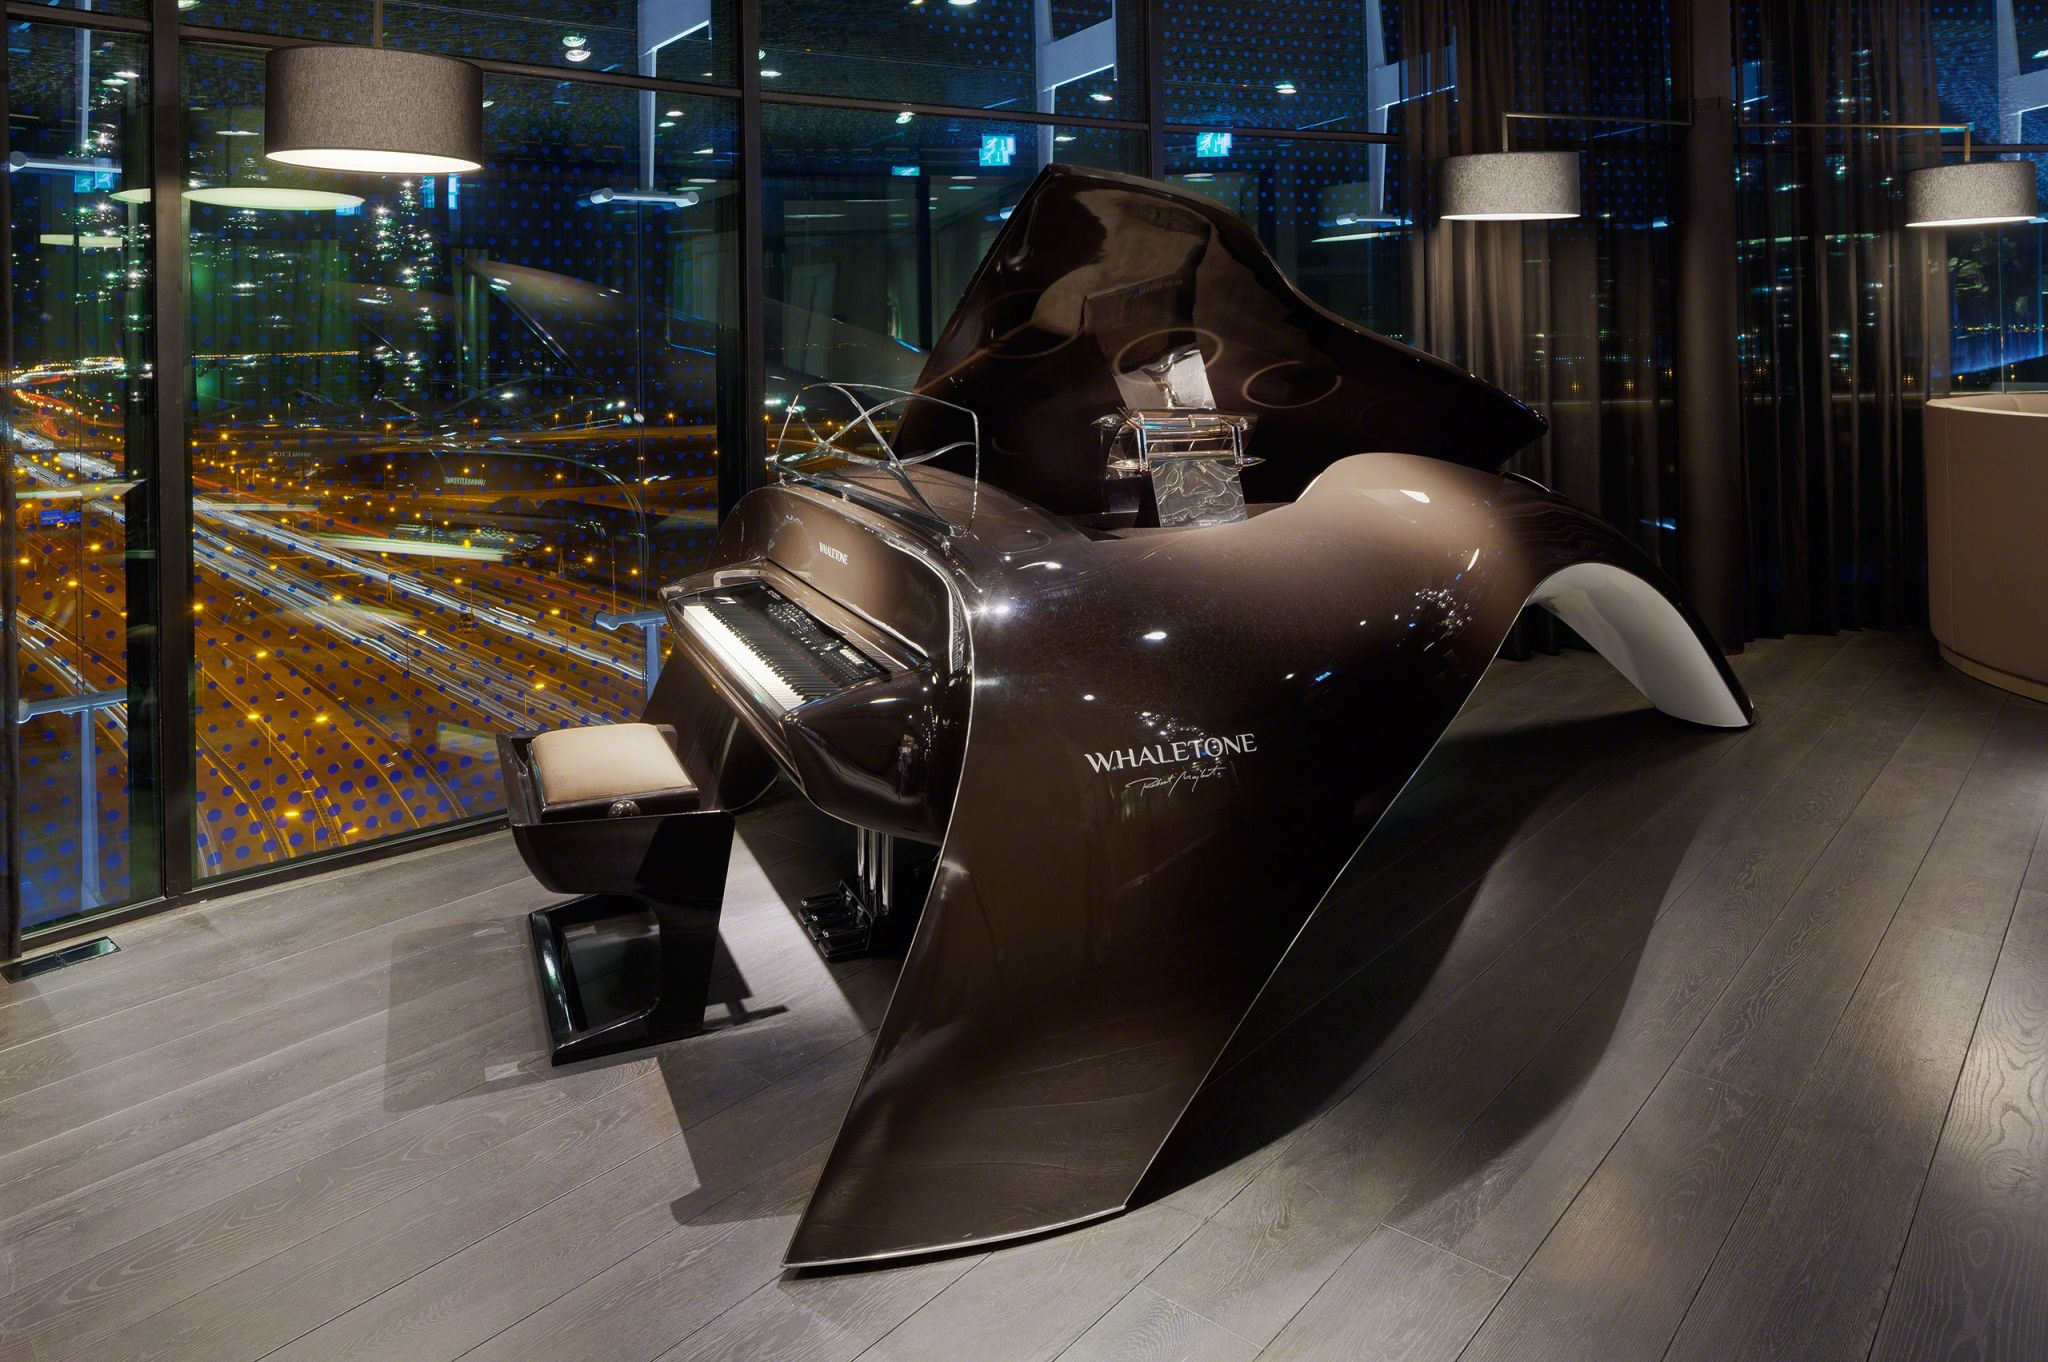 Interior designer Robert Kolenik integrated the Whaletone design piano into the sky bar of Amsterdam's Fletcher design hotel.